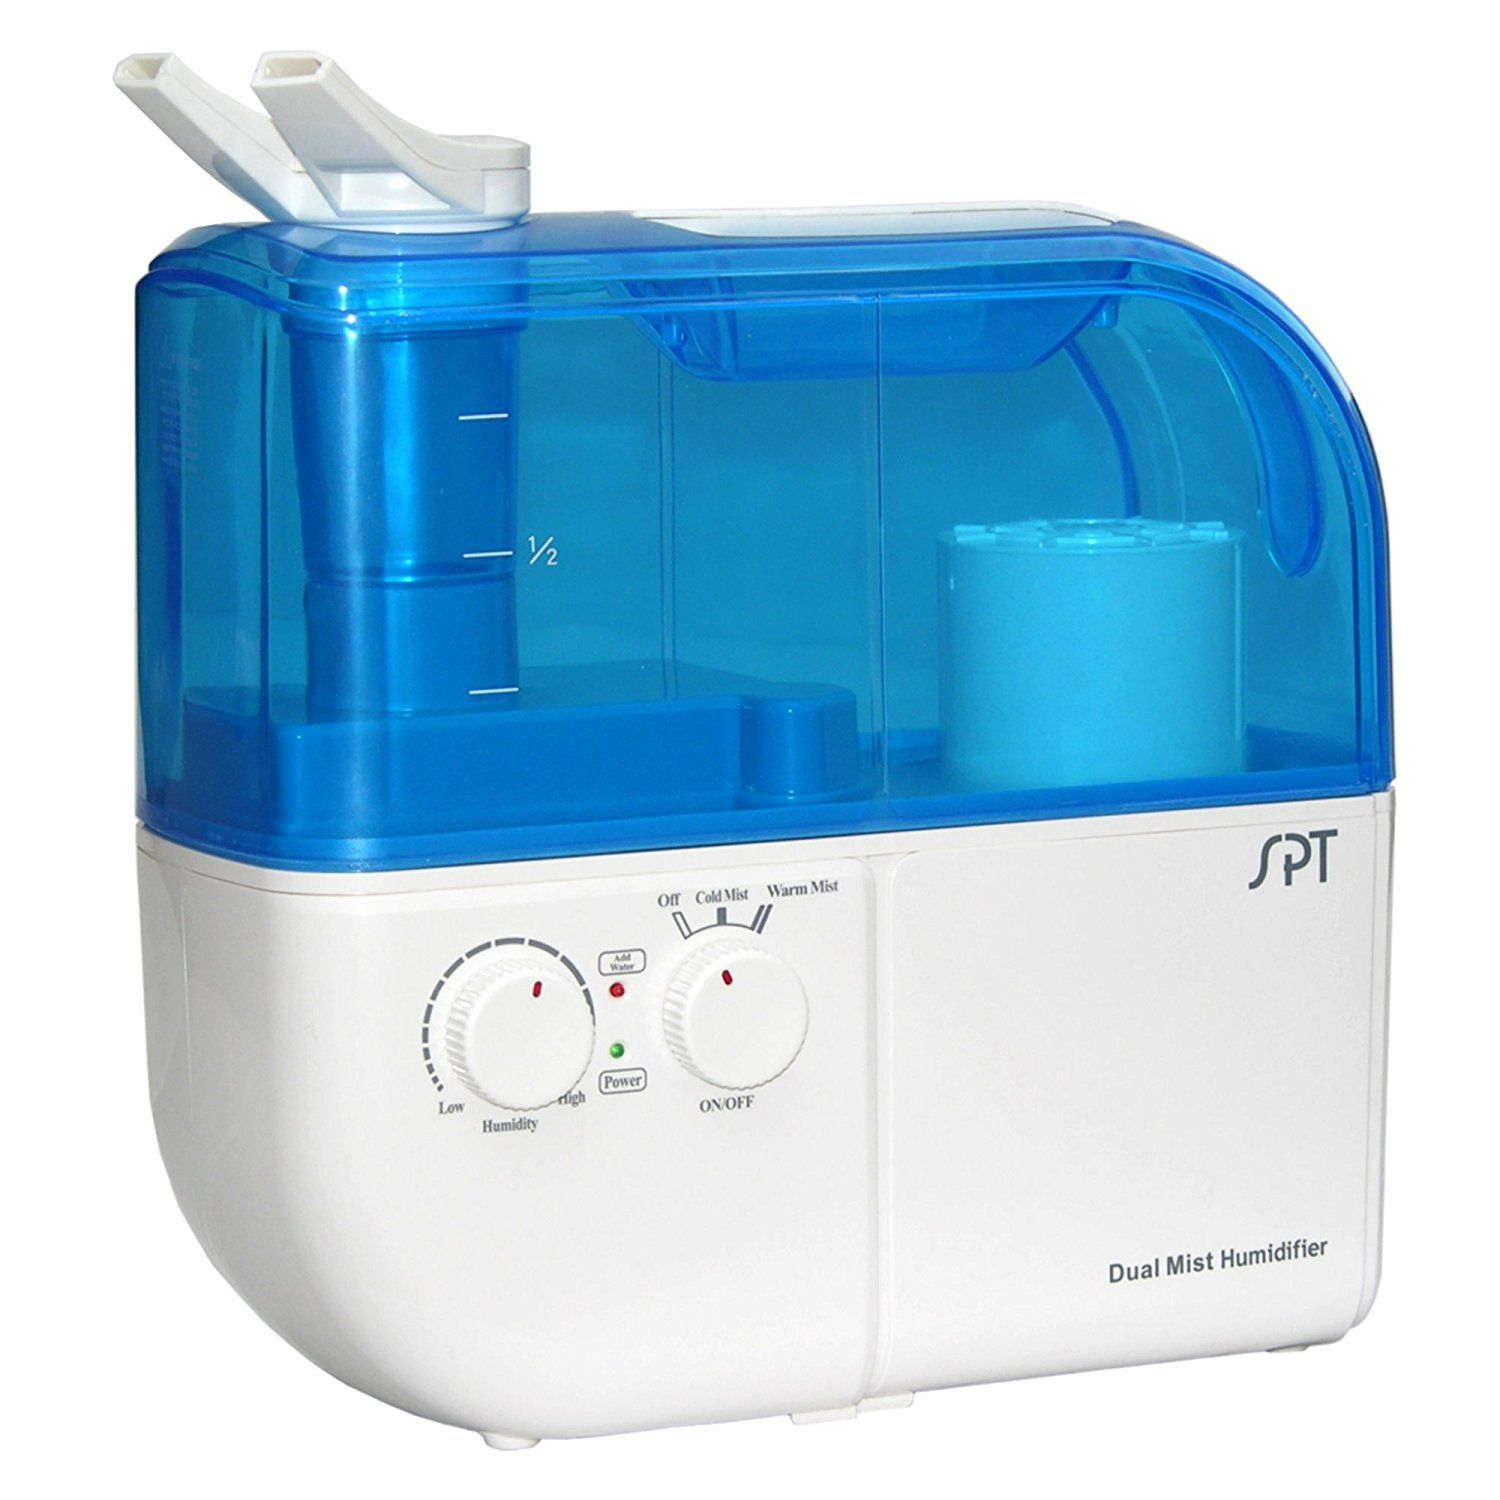 Best Warm Mist Humidifiers Of 2020: Reviews & Buying Guide